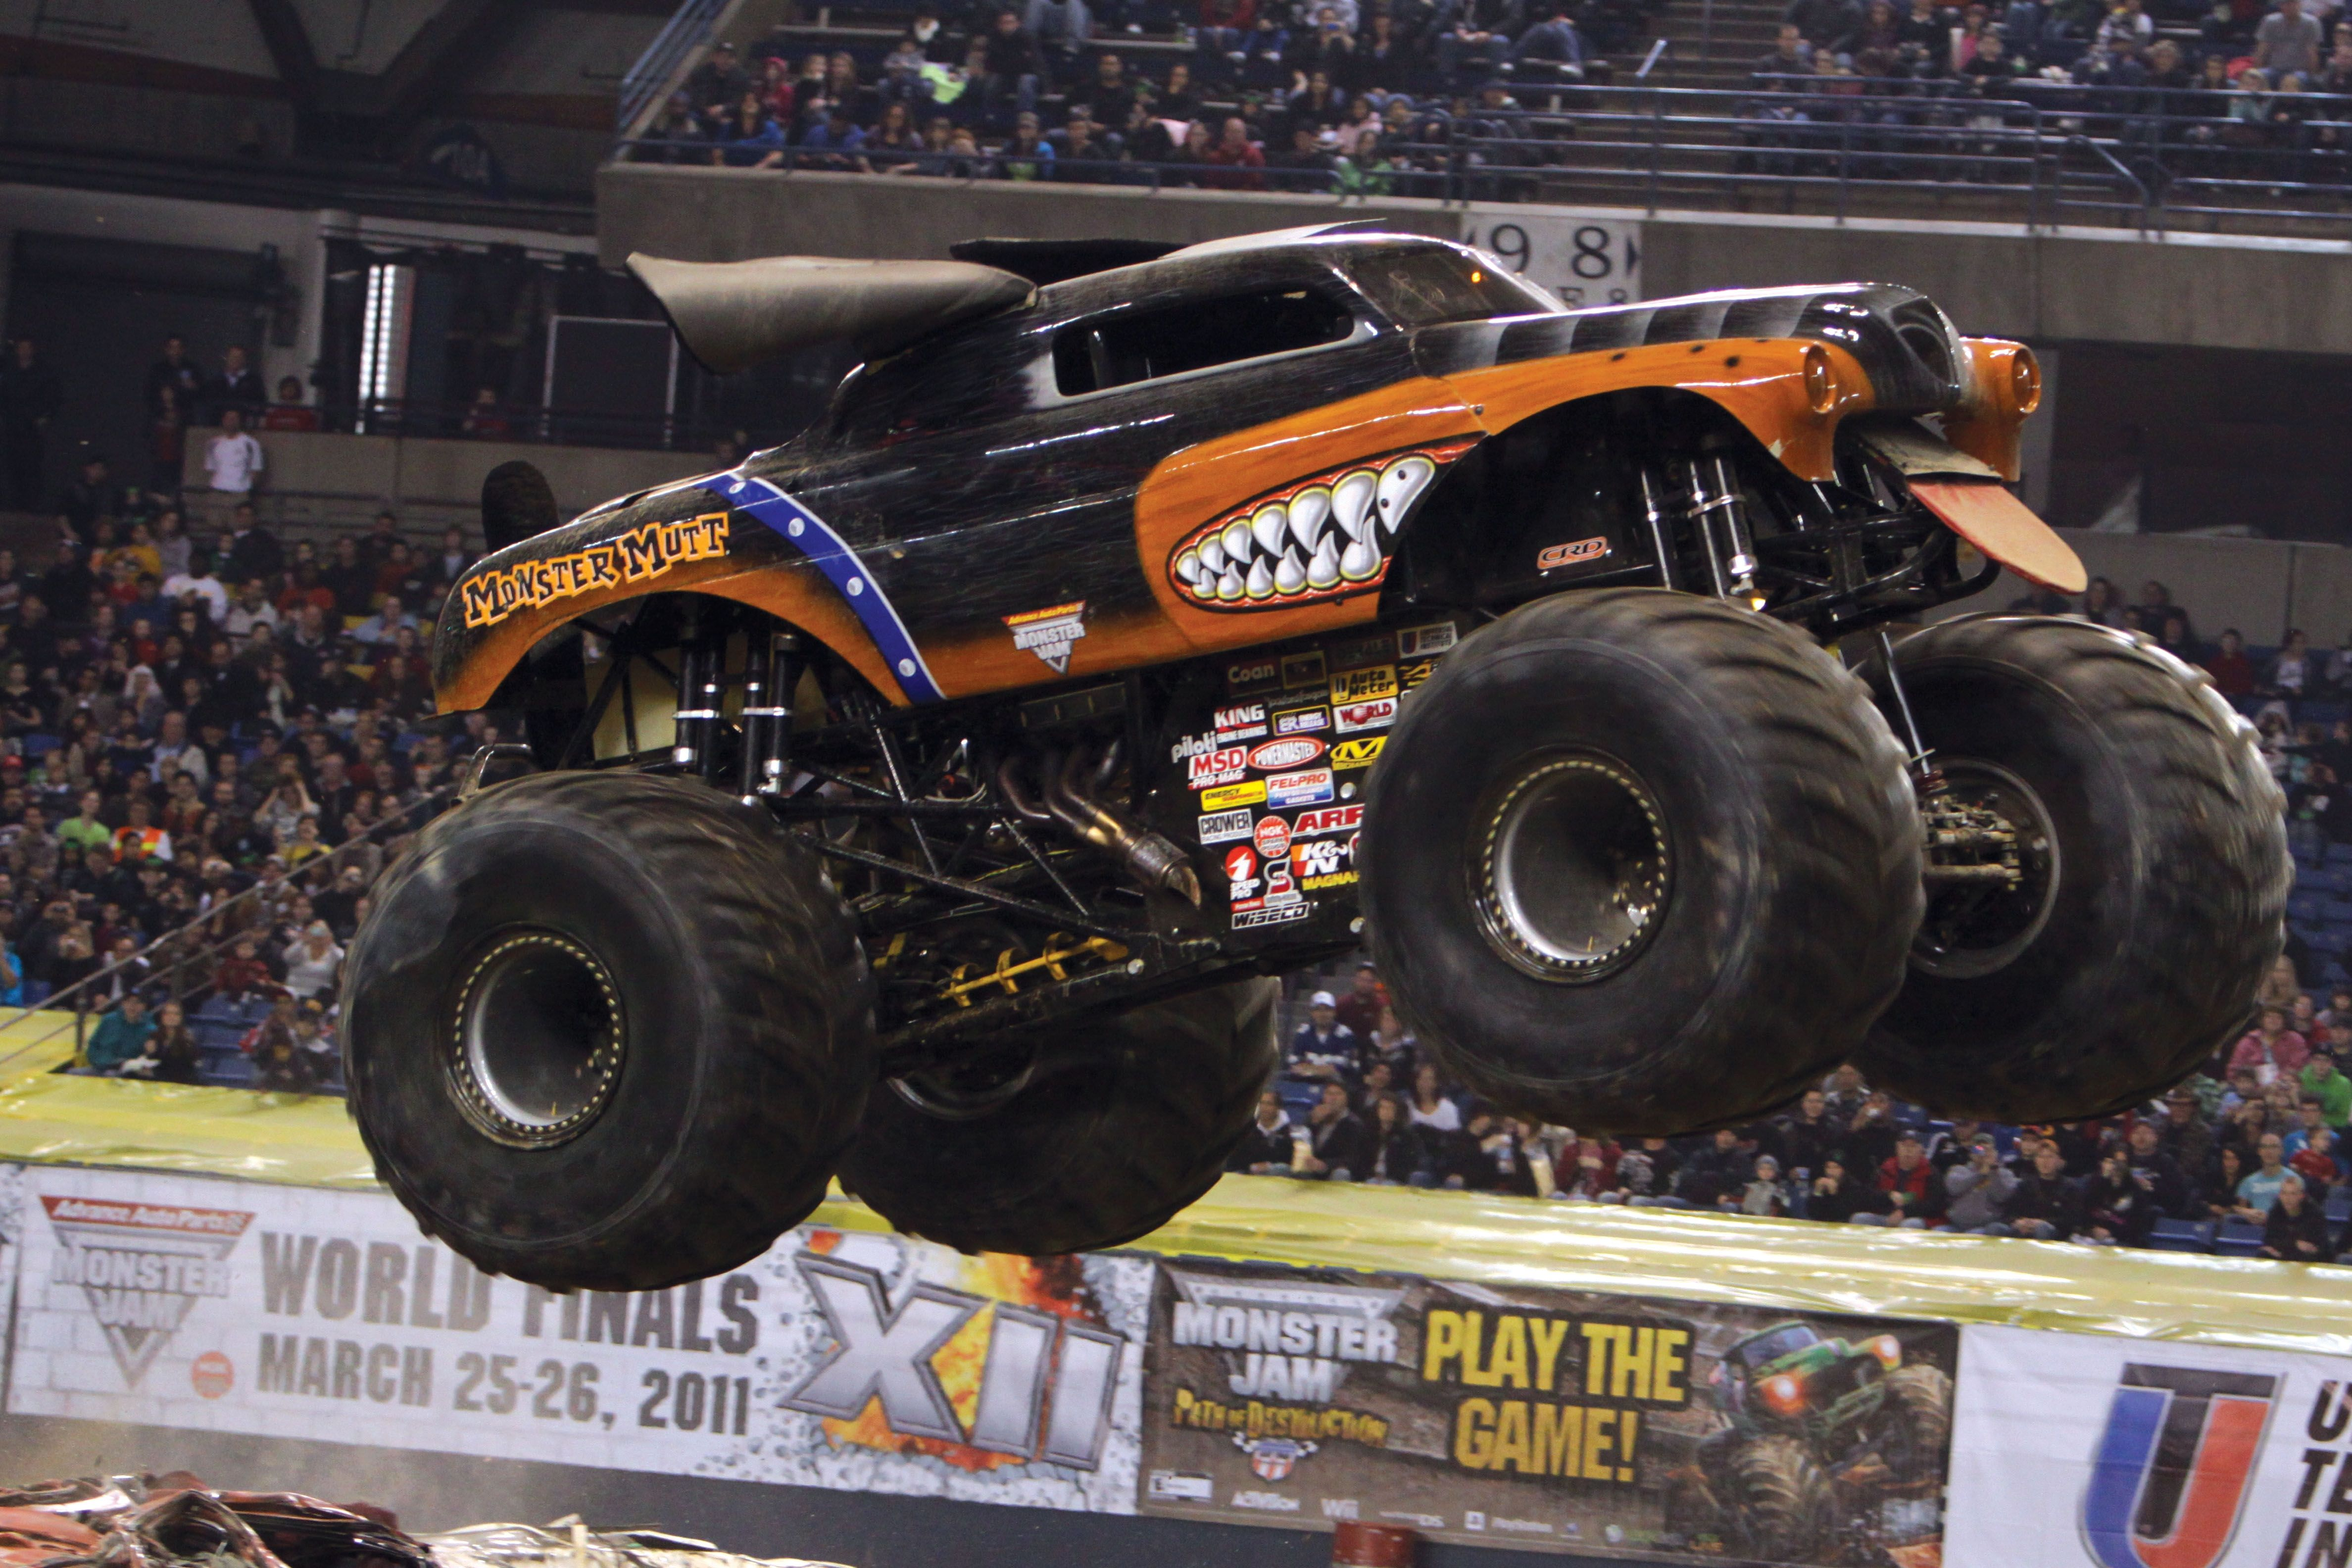 Monster mutt rottweiler monster truck